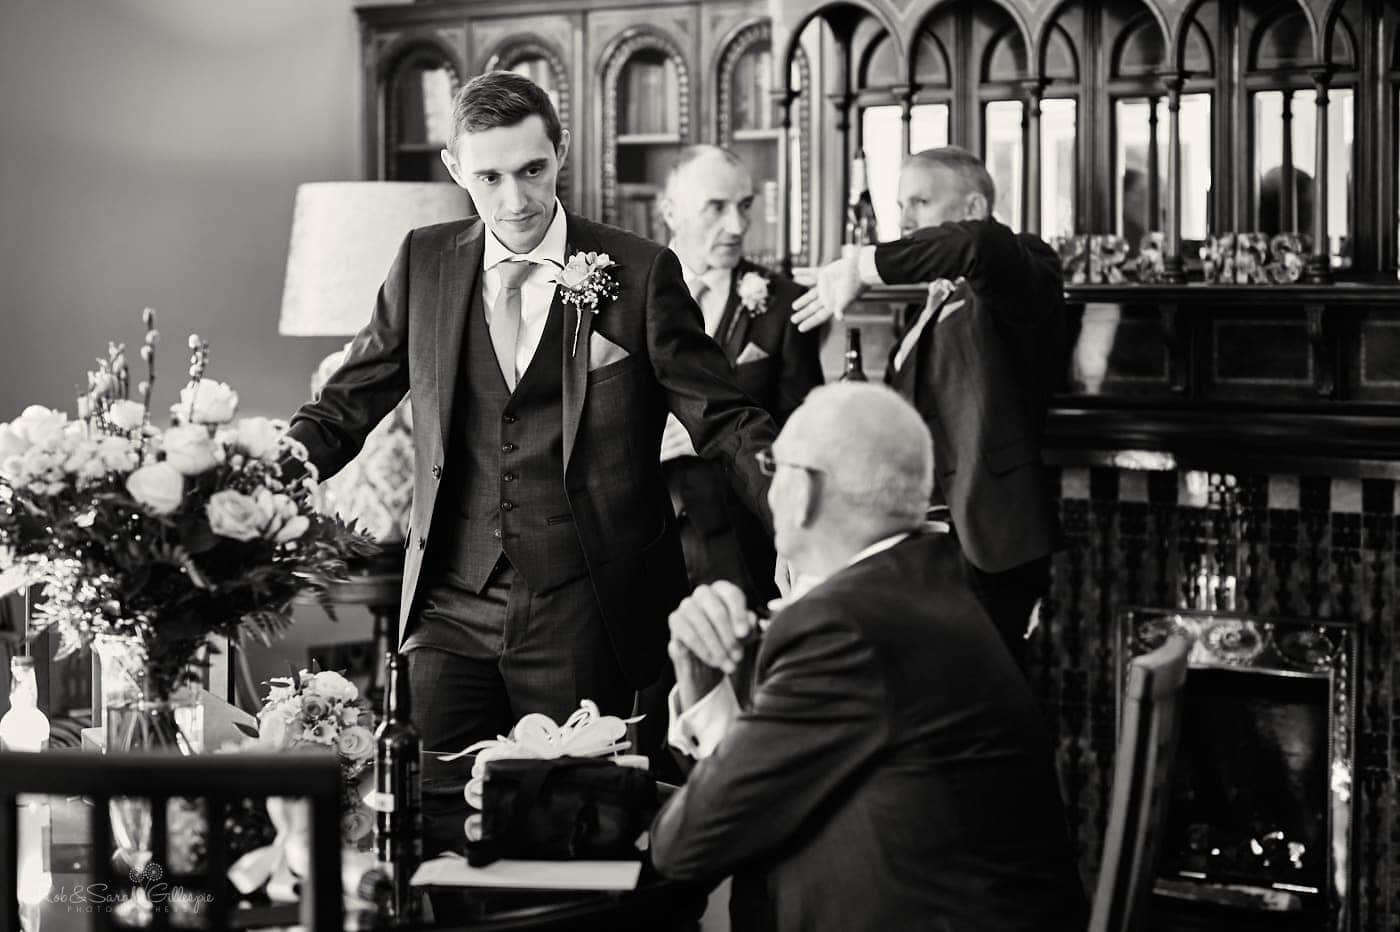 Groom chats with wedding guests